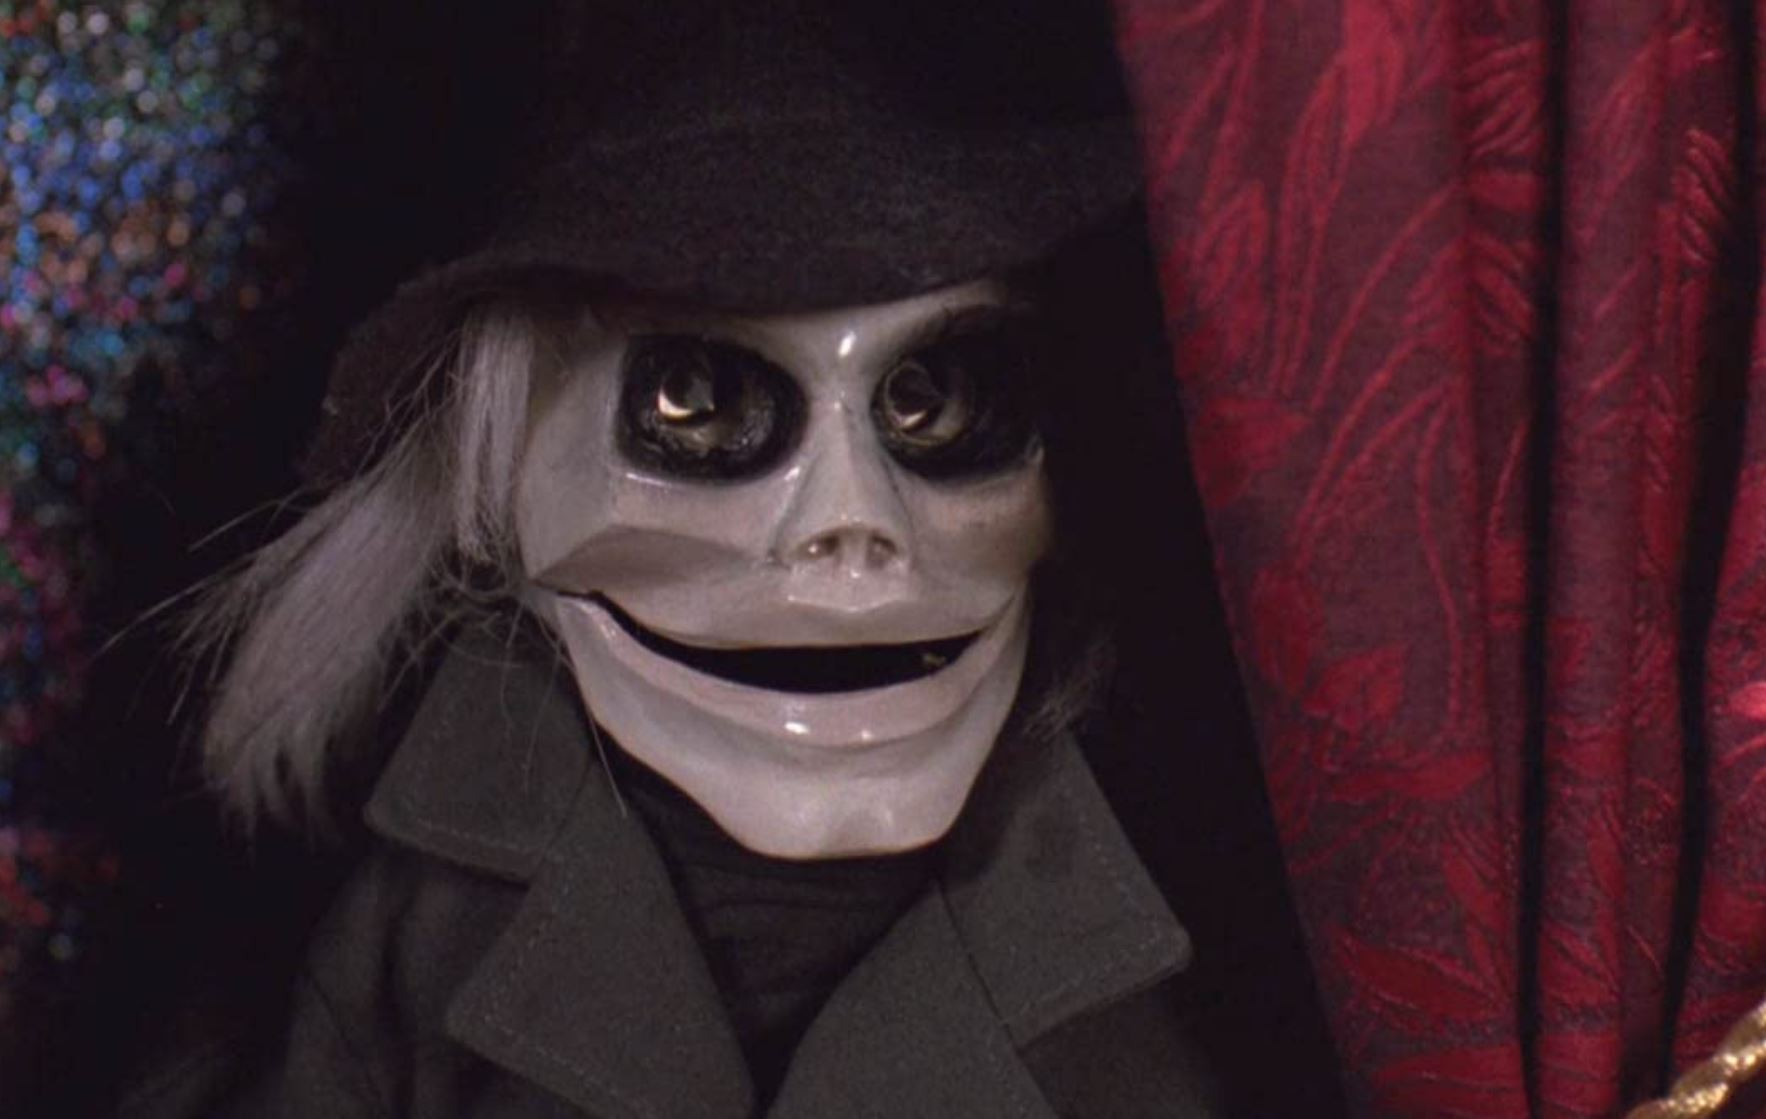 Blade from Puppet Master